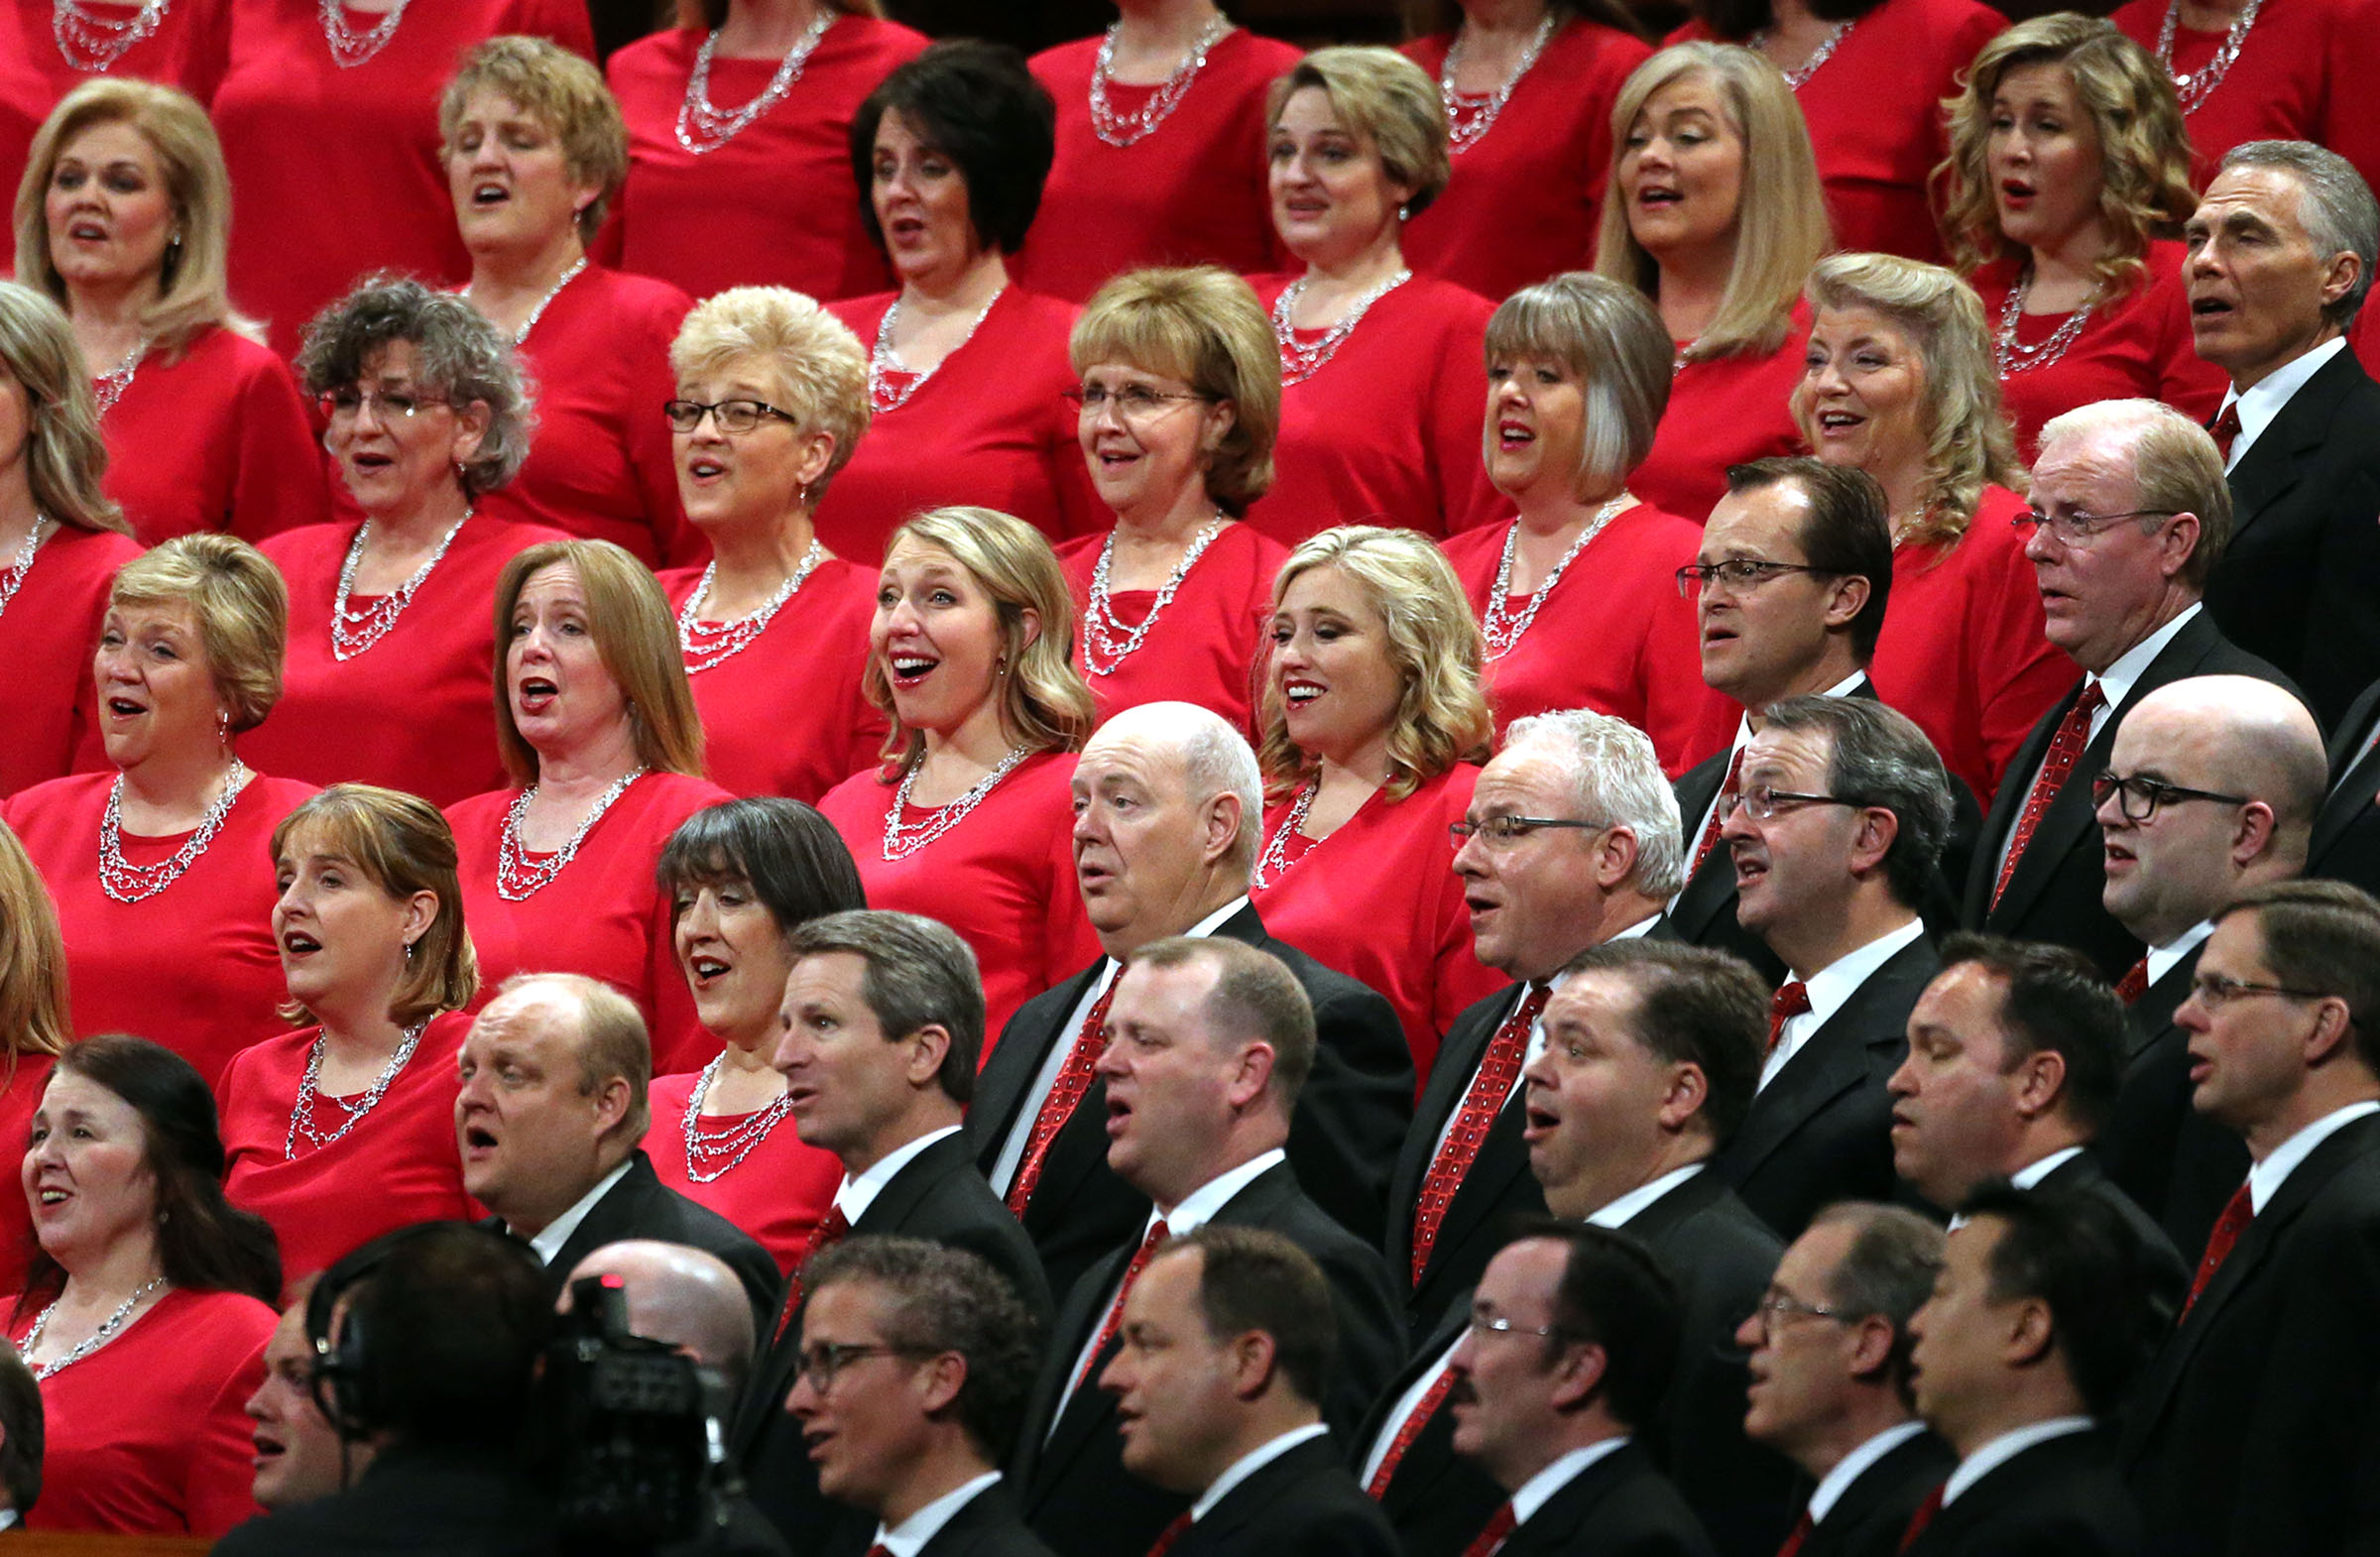 The Mormon Tabernacle Choir sings during the Sunday afternoon session of the 188th Annual General Conference of The Church of Jesus Christ of Latter-day Saints at the Conference Center in Salt Lake City on Sunday, April 1, 2018.